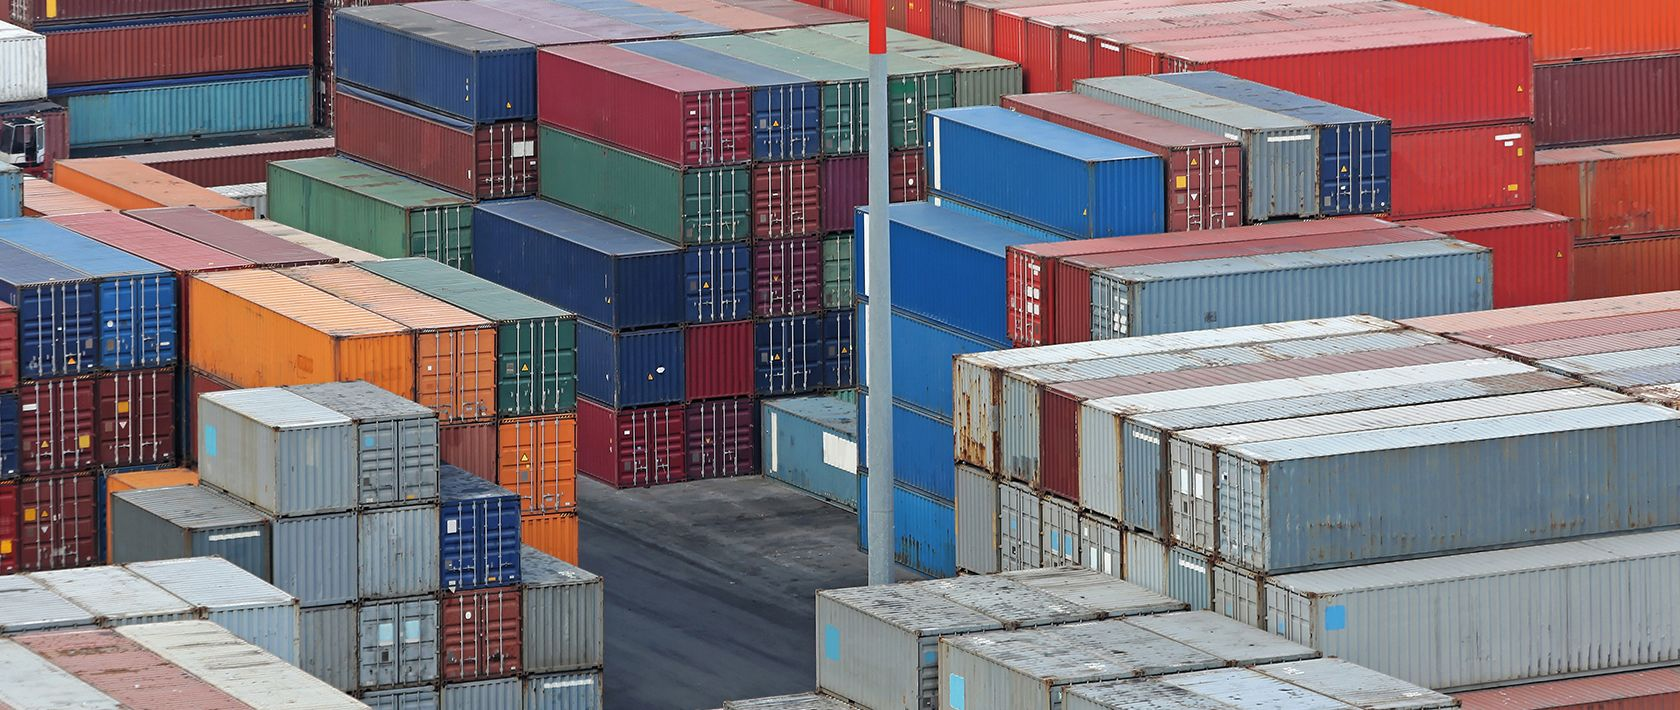 How are containers influencing the world of software testing?